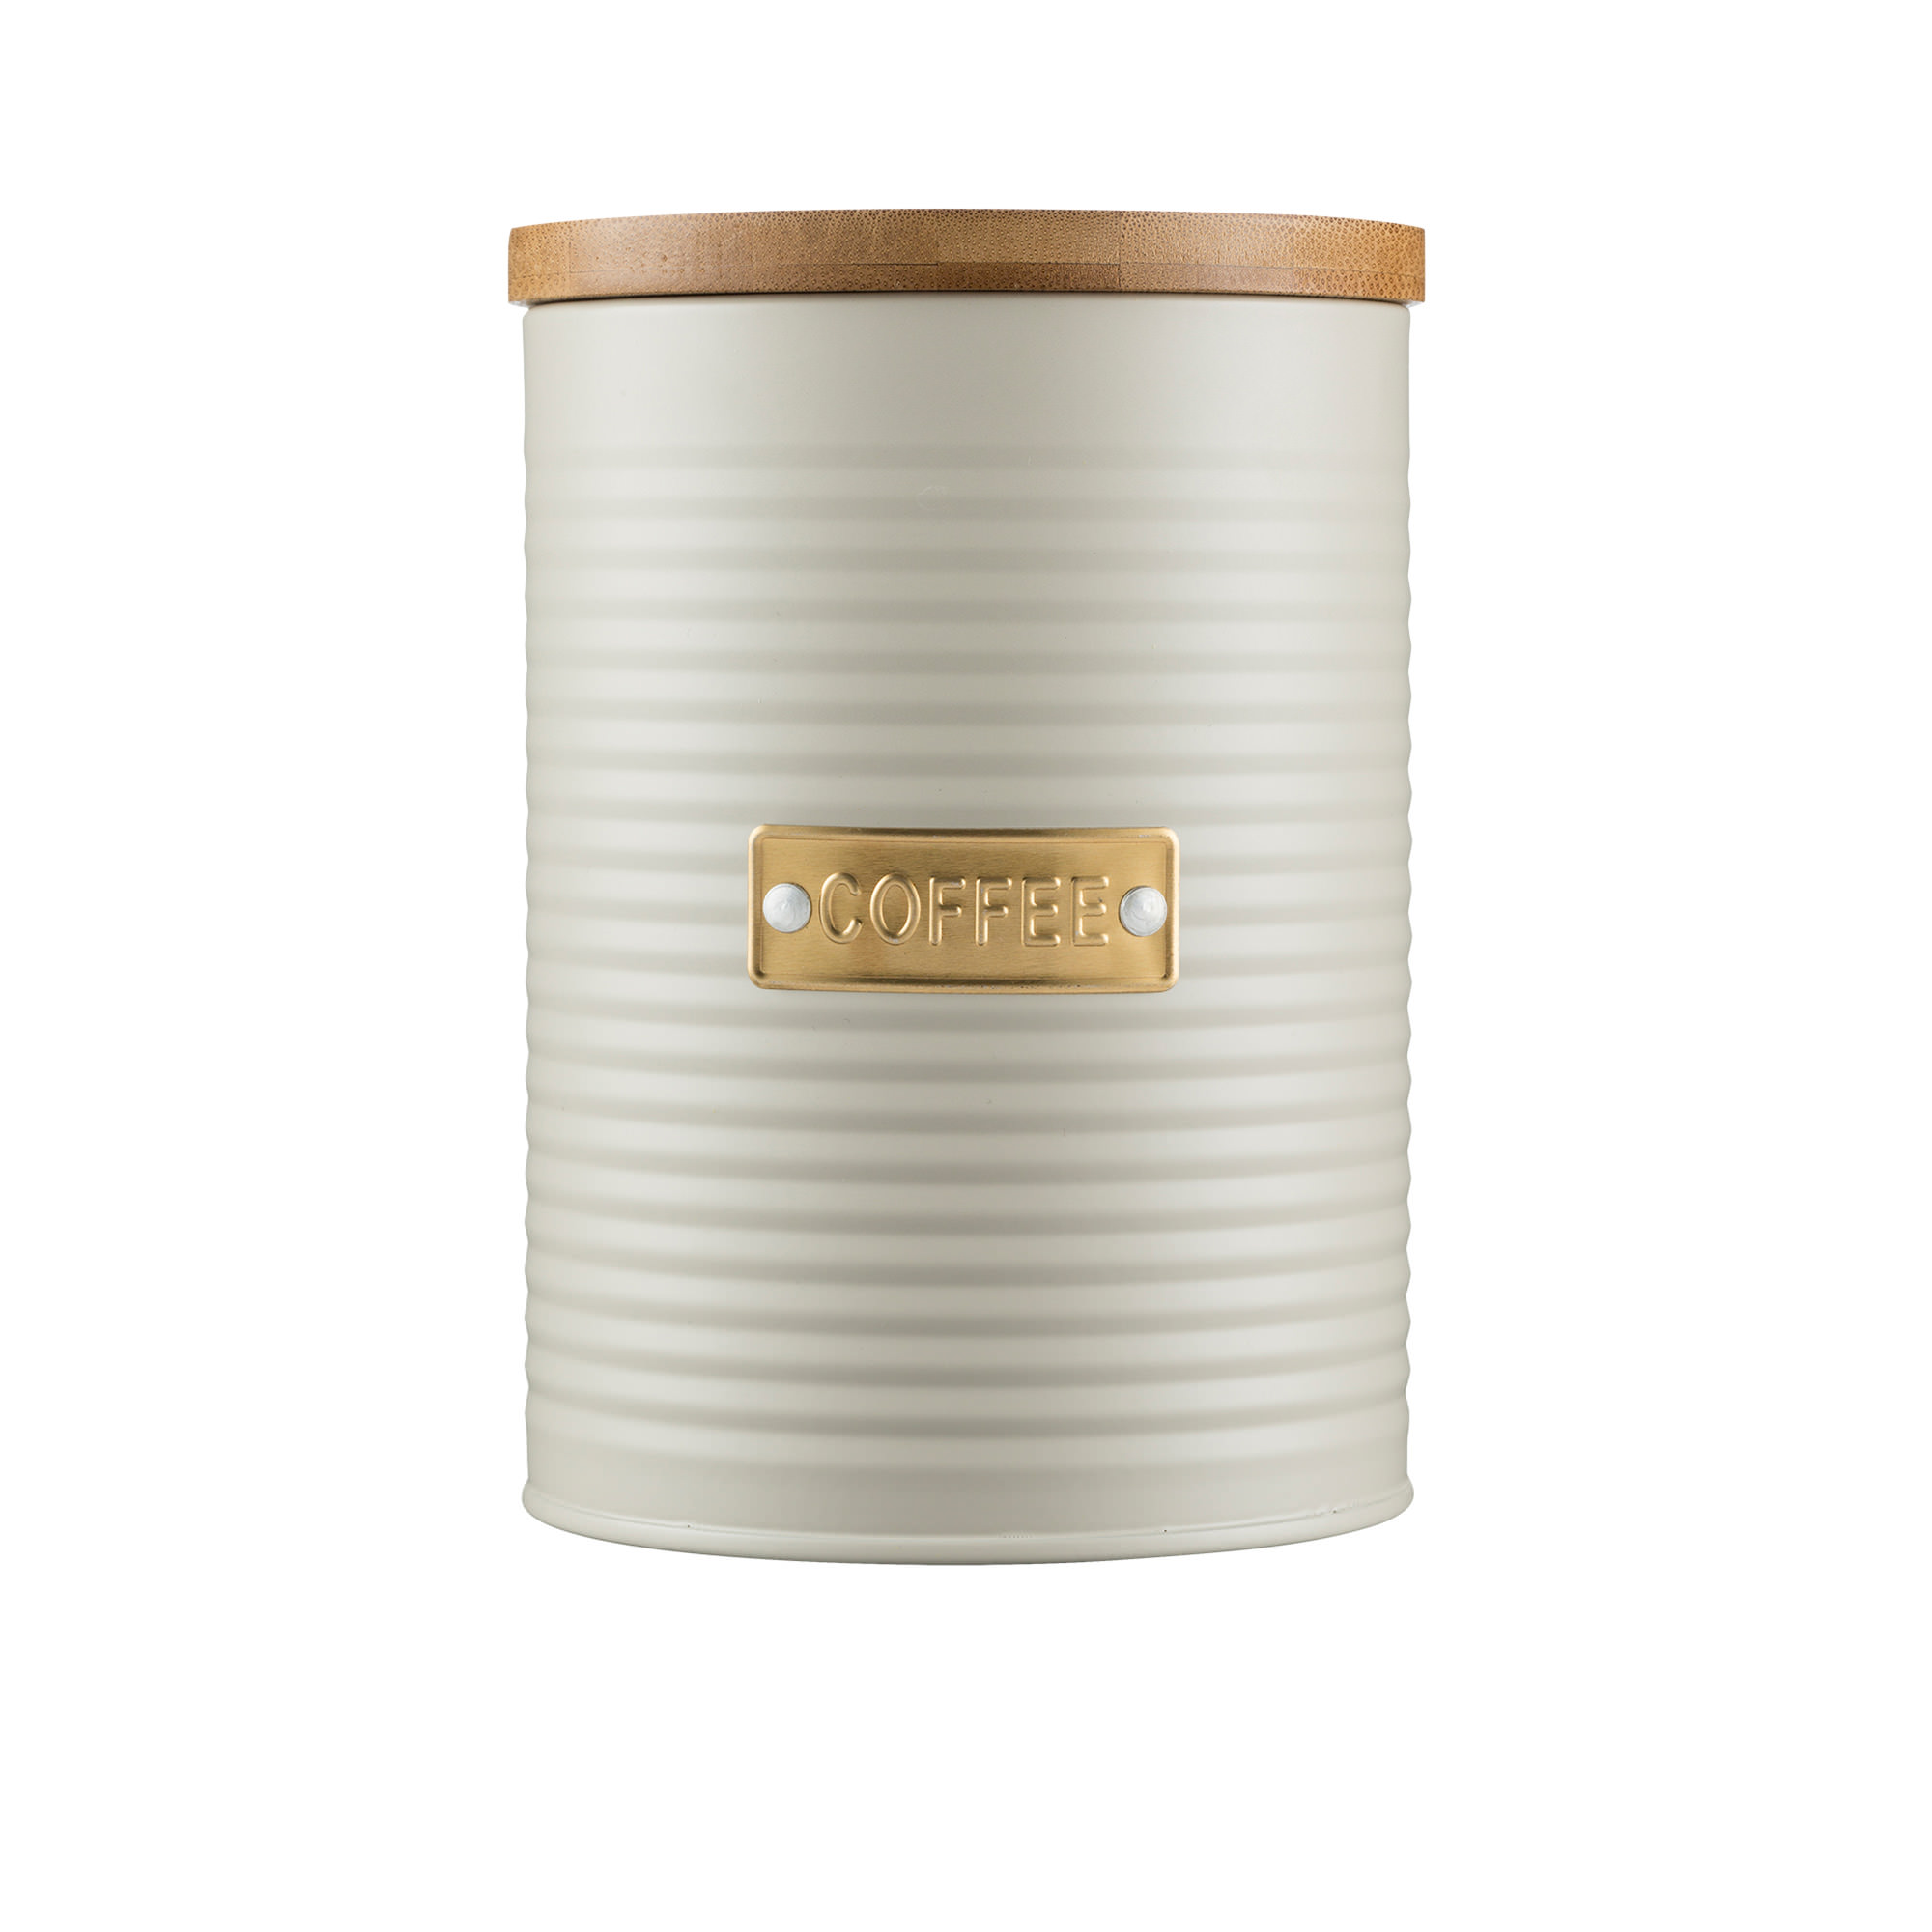 Typhoon Living Coffee Canister 1.4L Oatmeal